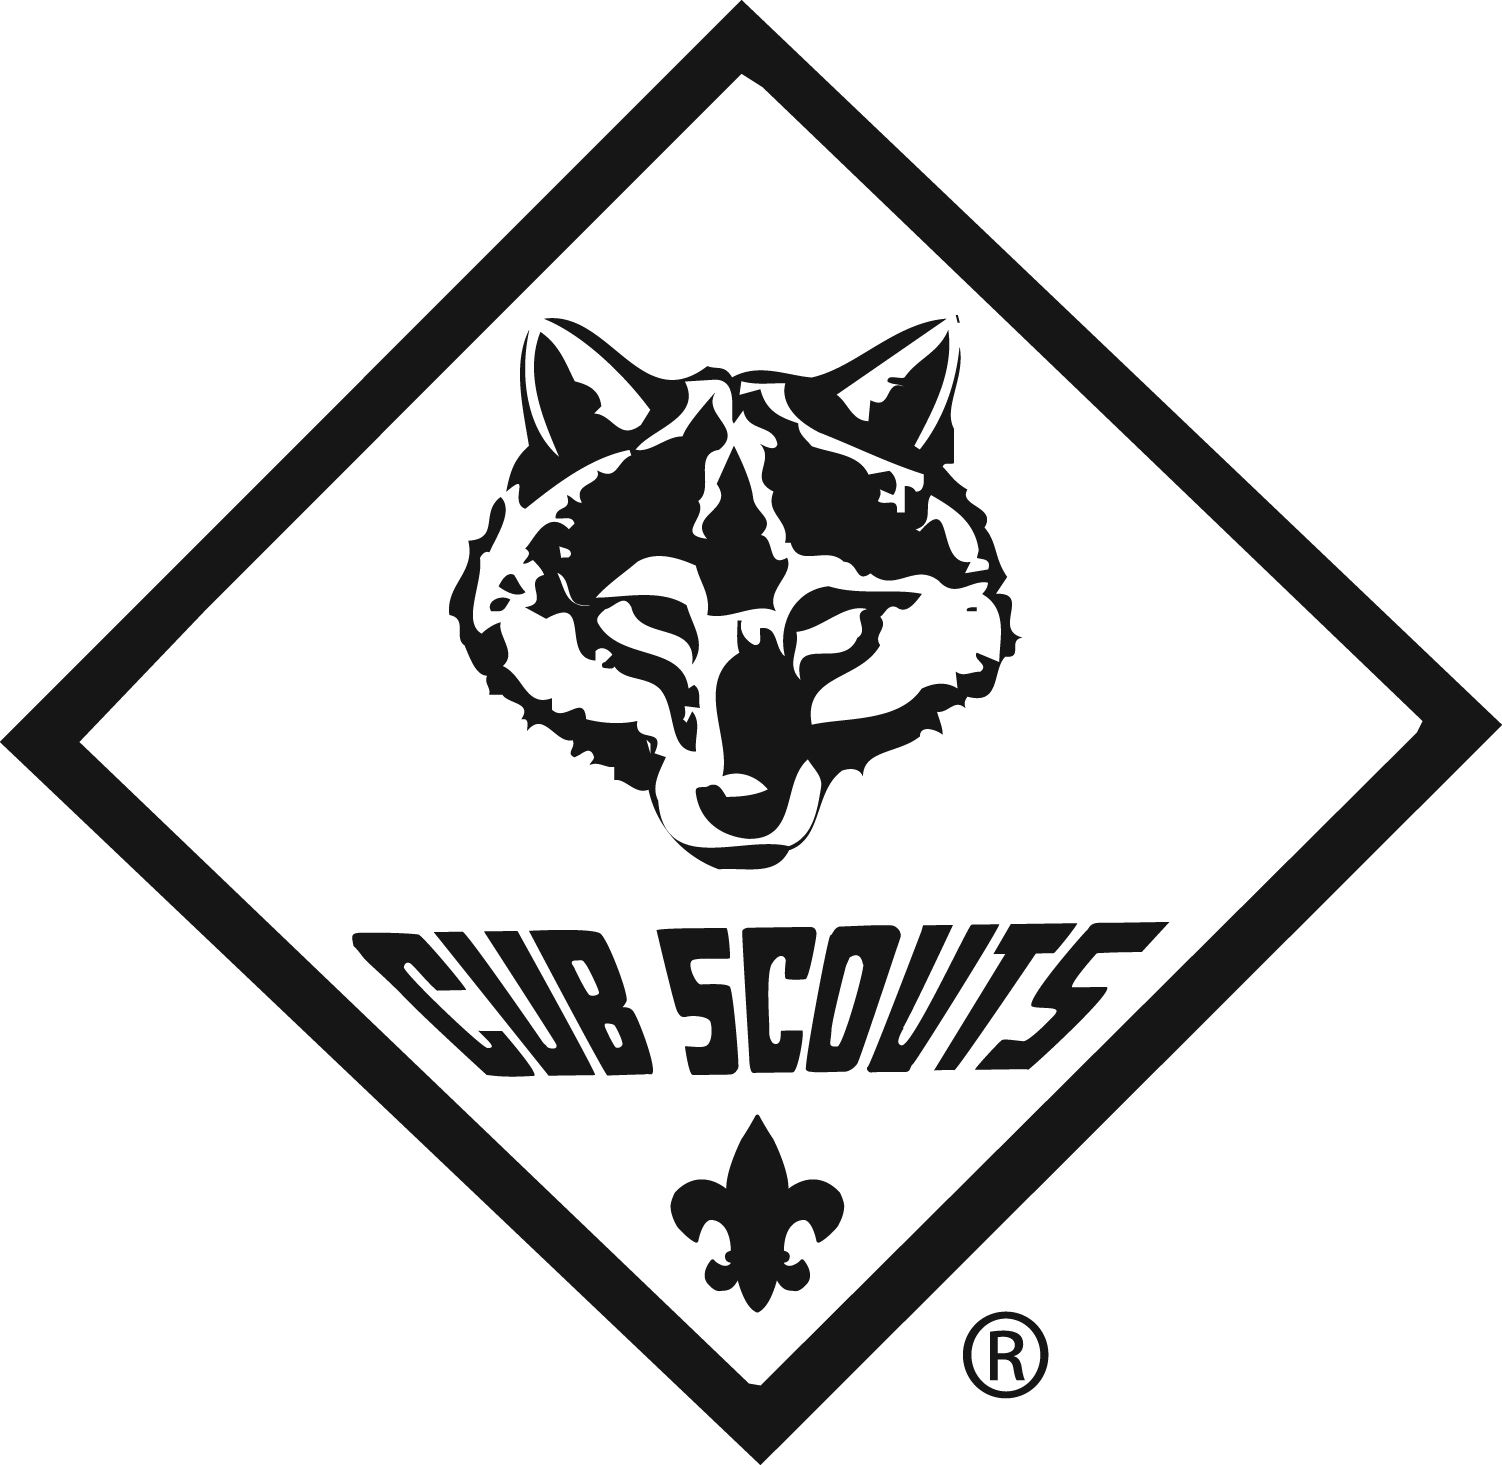 New Cub Scout Program Images 2015 Cub Scouts Cub Scouts Cub